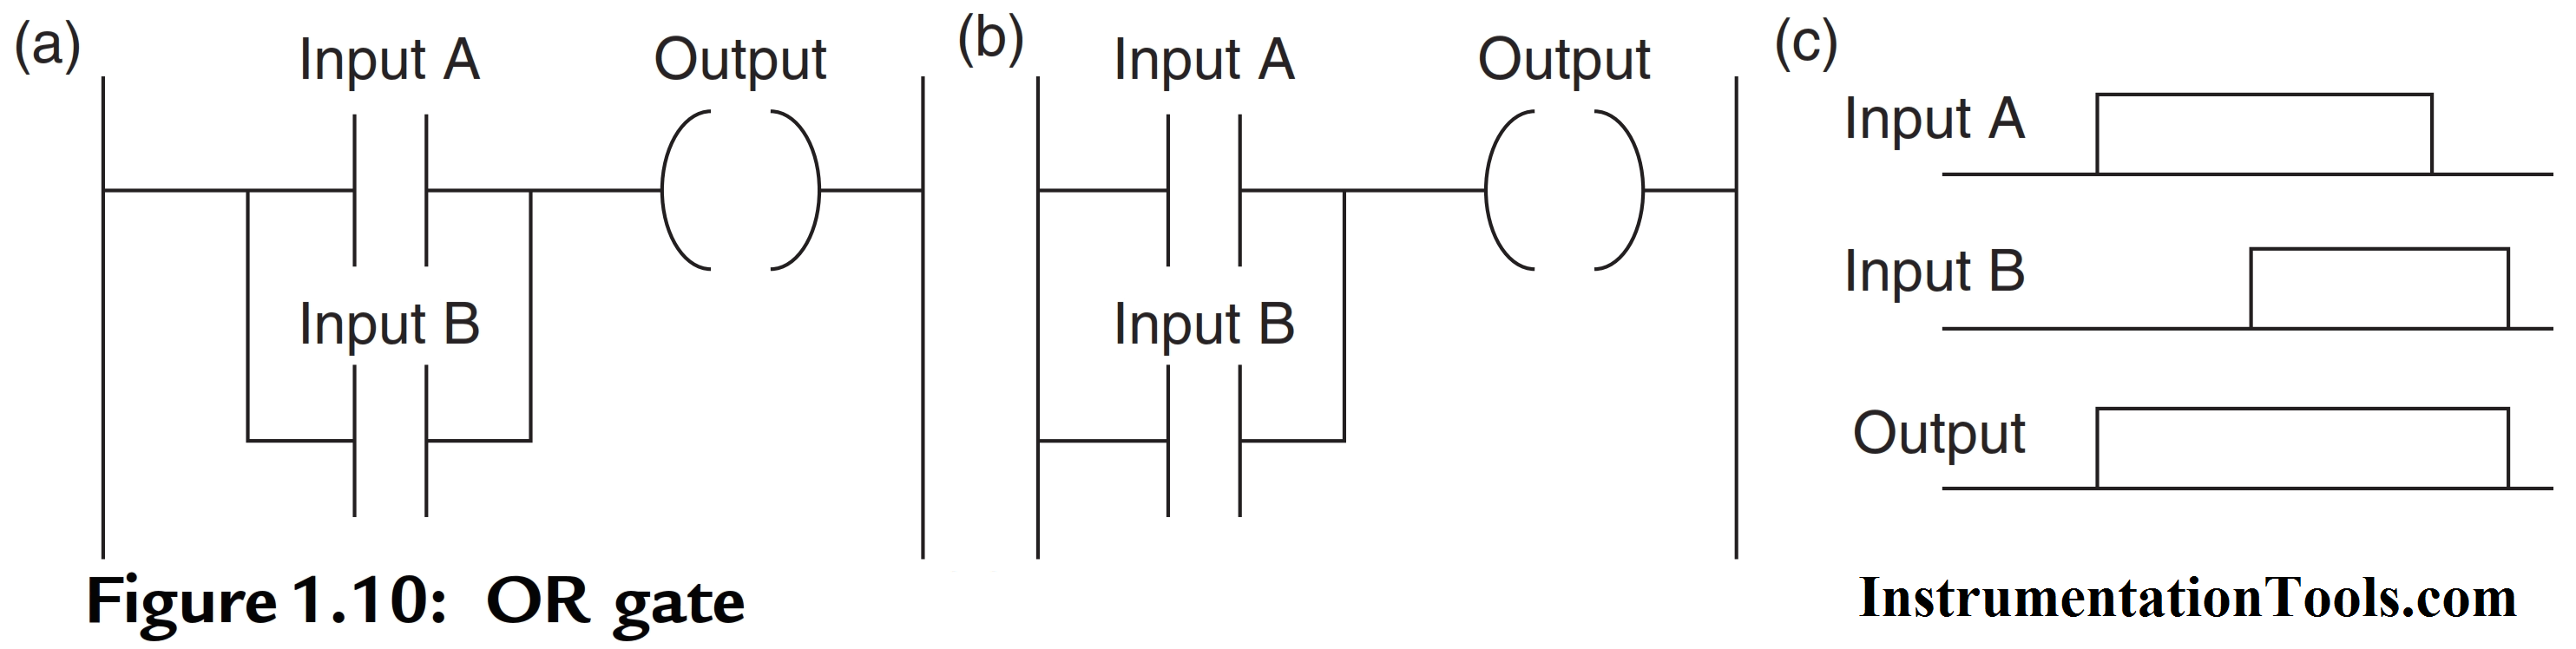 Telesteps  bi Ladder 10039 10es Bh Photo Video 1363bed03eeeff7b in addition Logical Drawing as well Wiring Diagrams And Ladder Logic additionally Wiring Diagrams And Ladder Logic in addition Ppt On Plc. on combination ladder logic